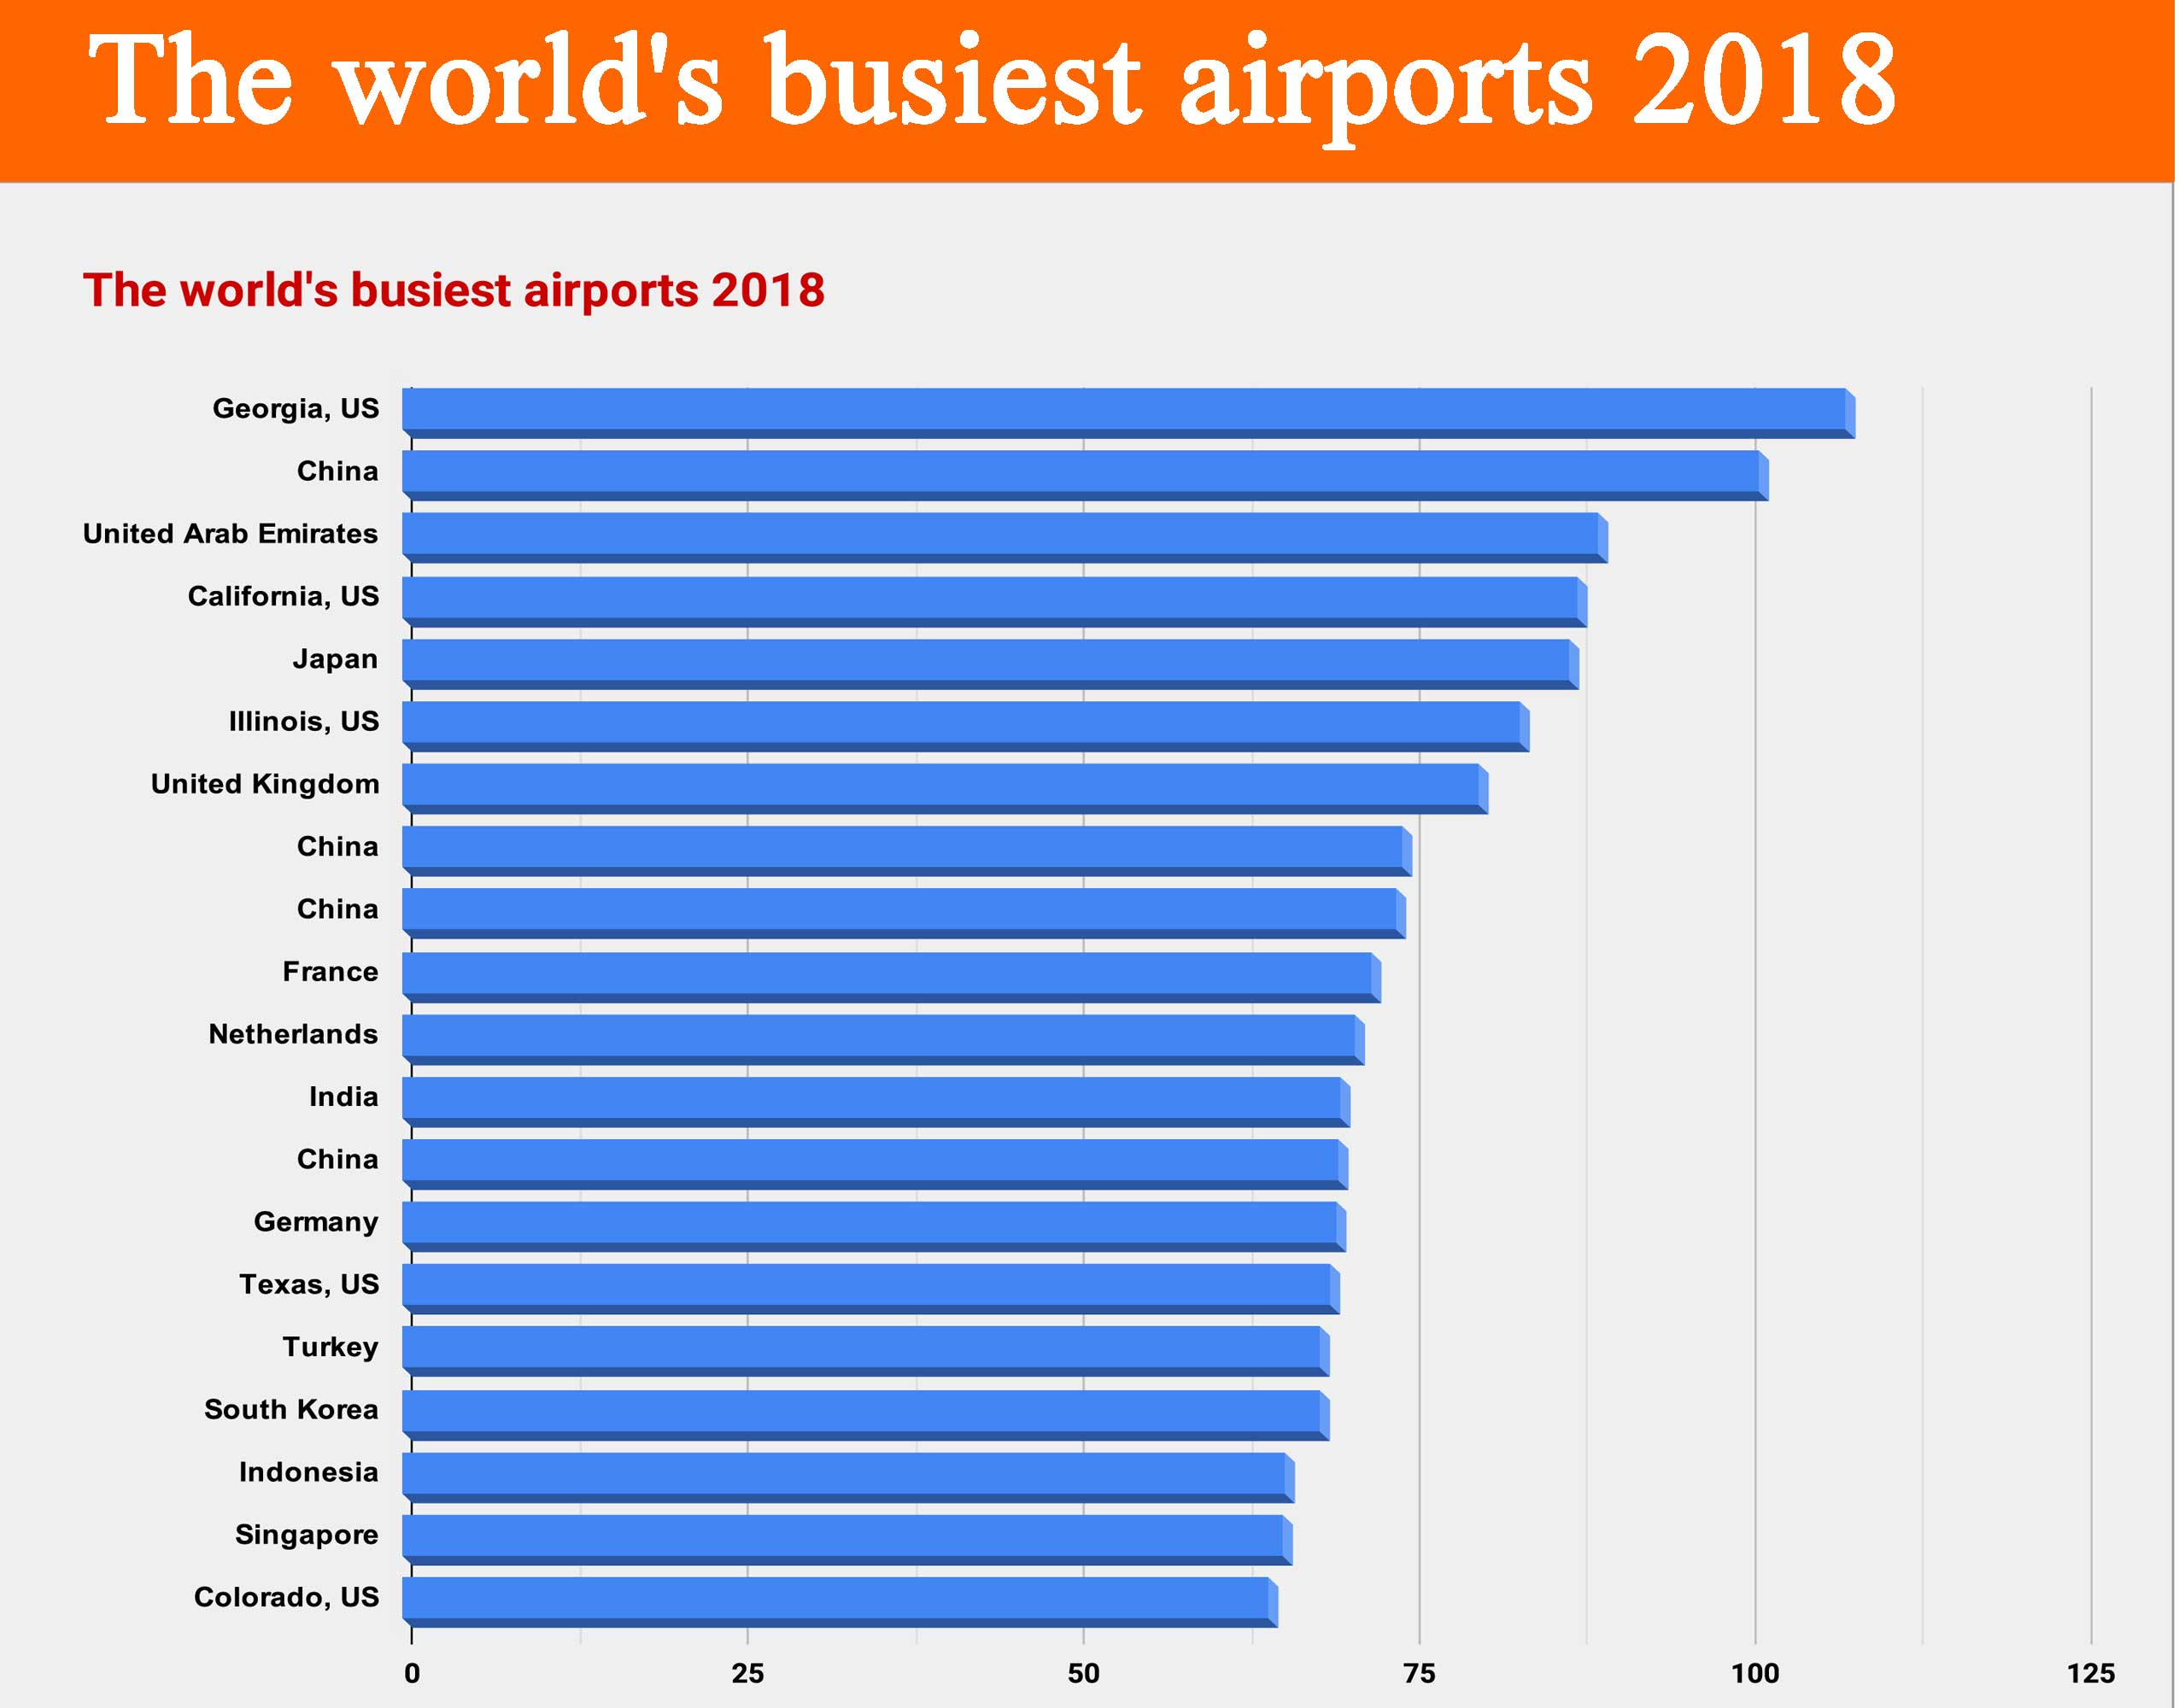 These are the World's Busiest Airports 2018